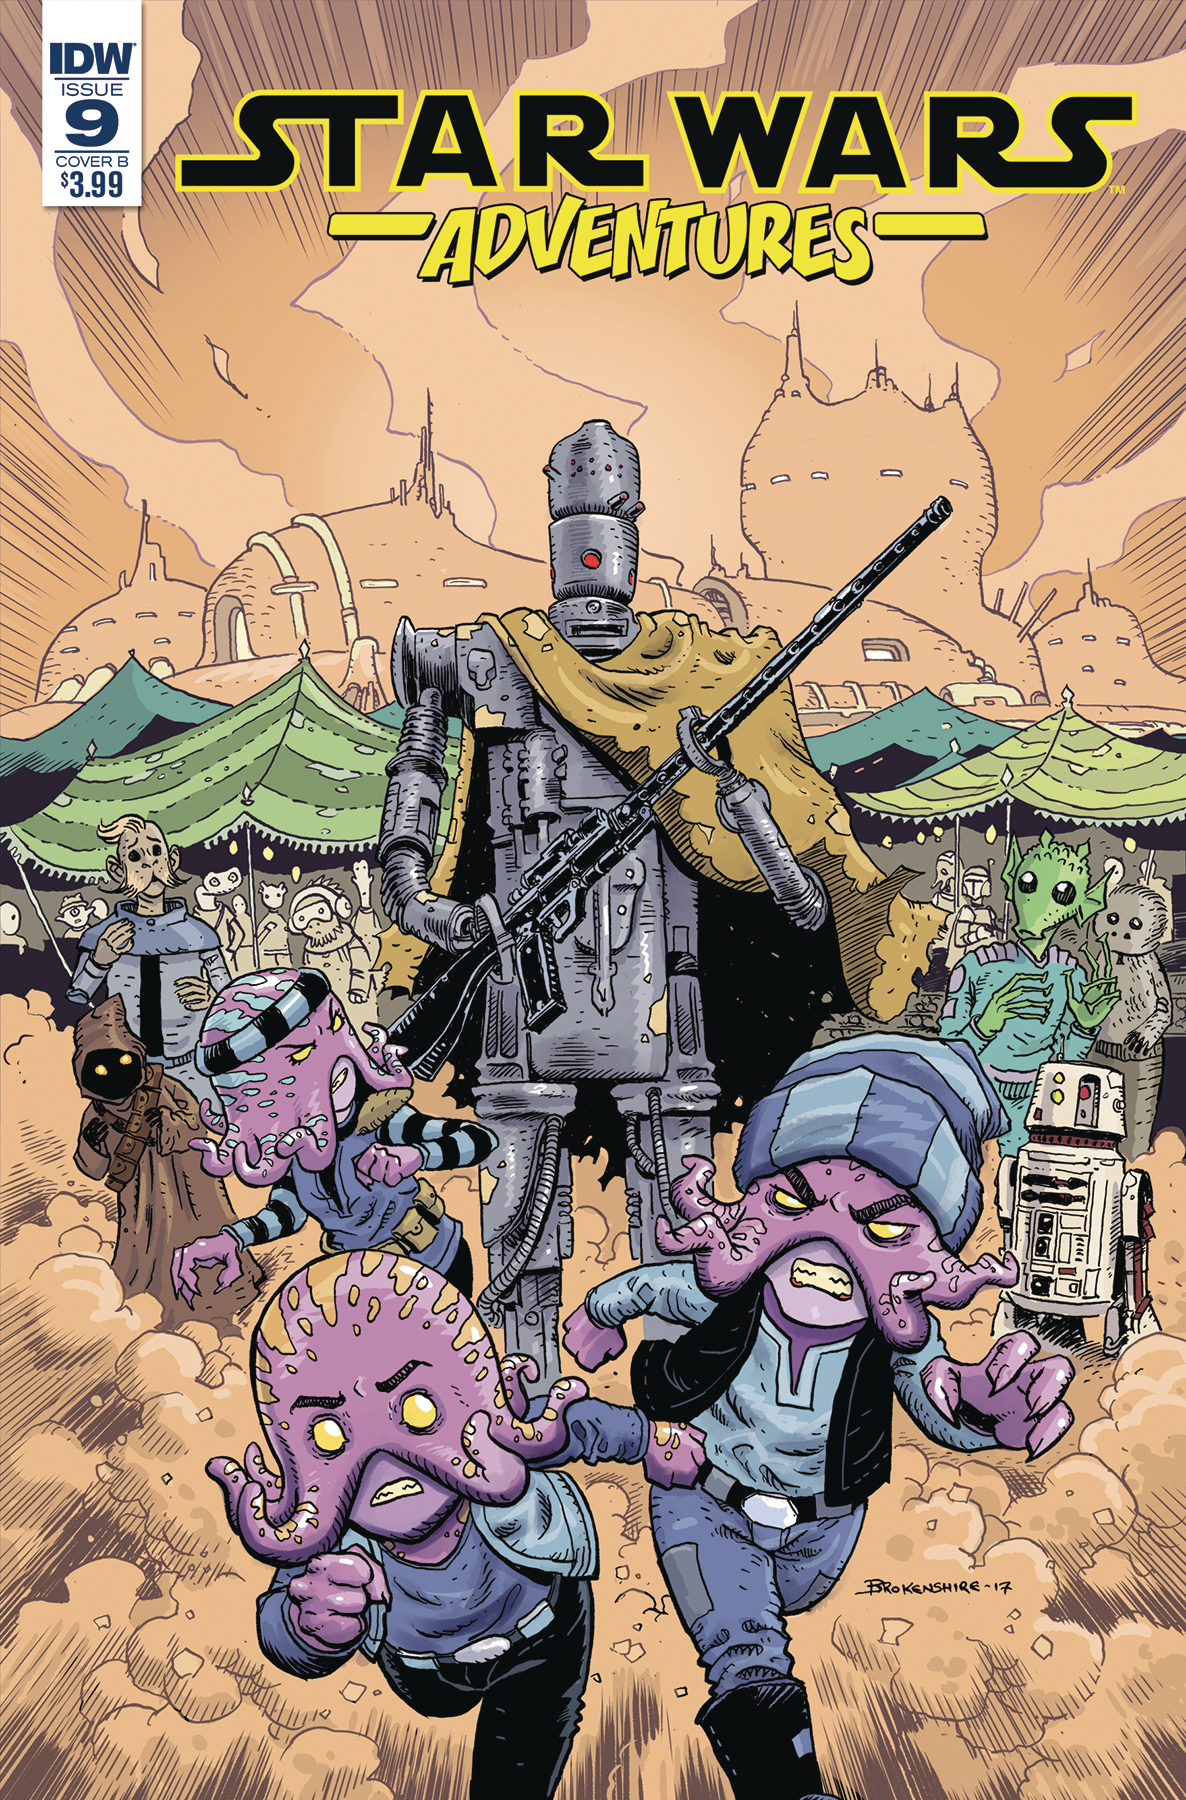 STAR WARS ADVENTURES #9 CVR B BROKENSHIRE